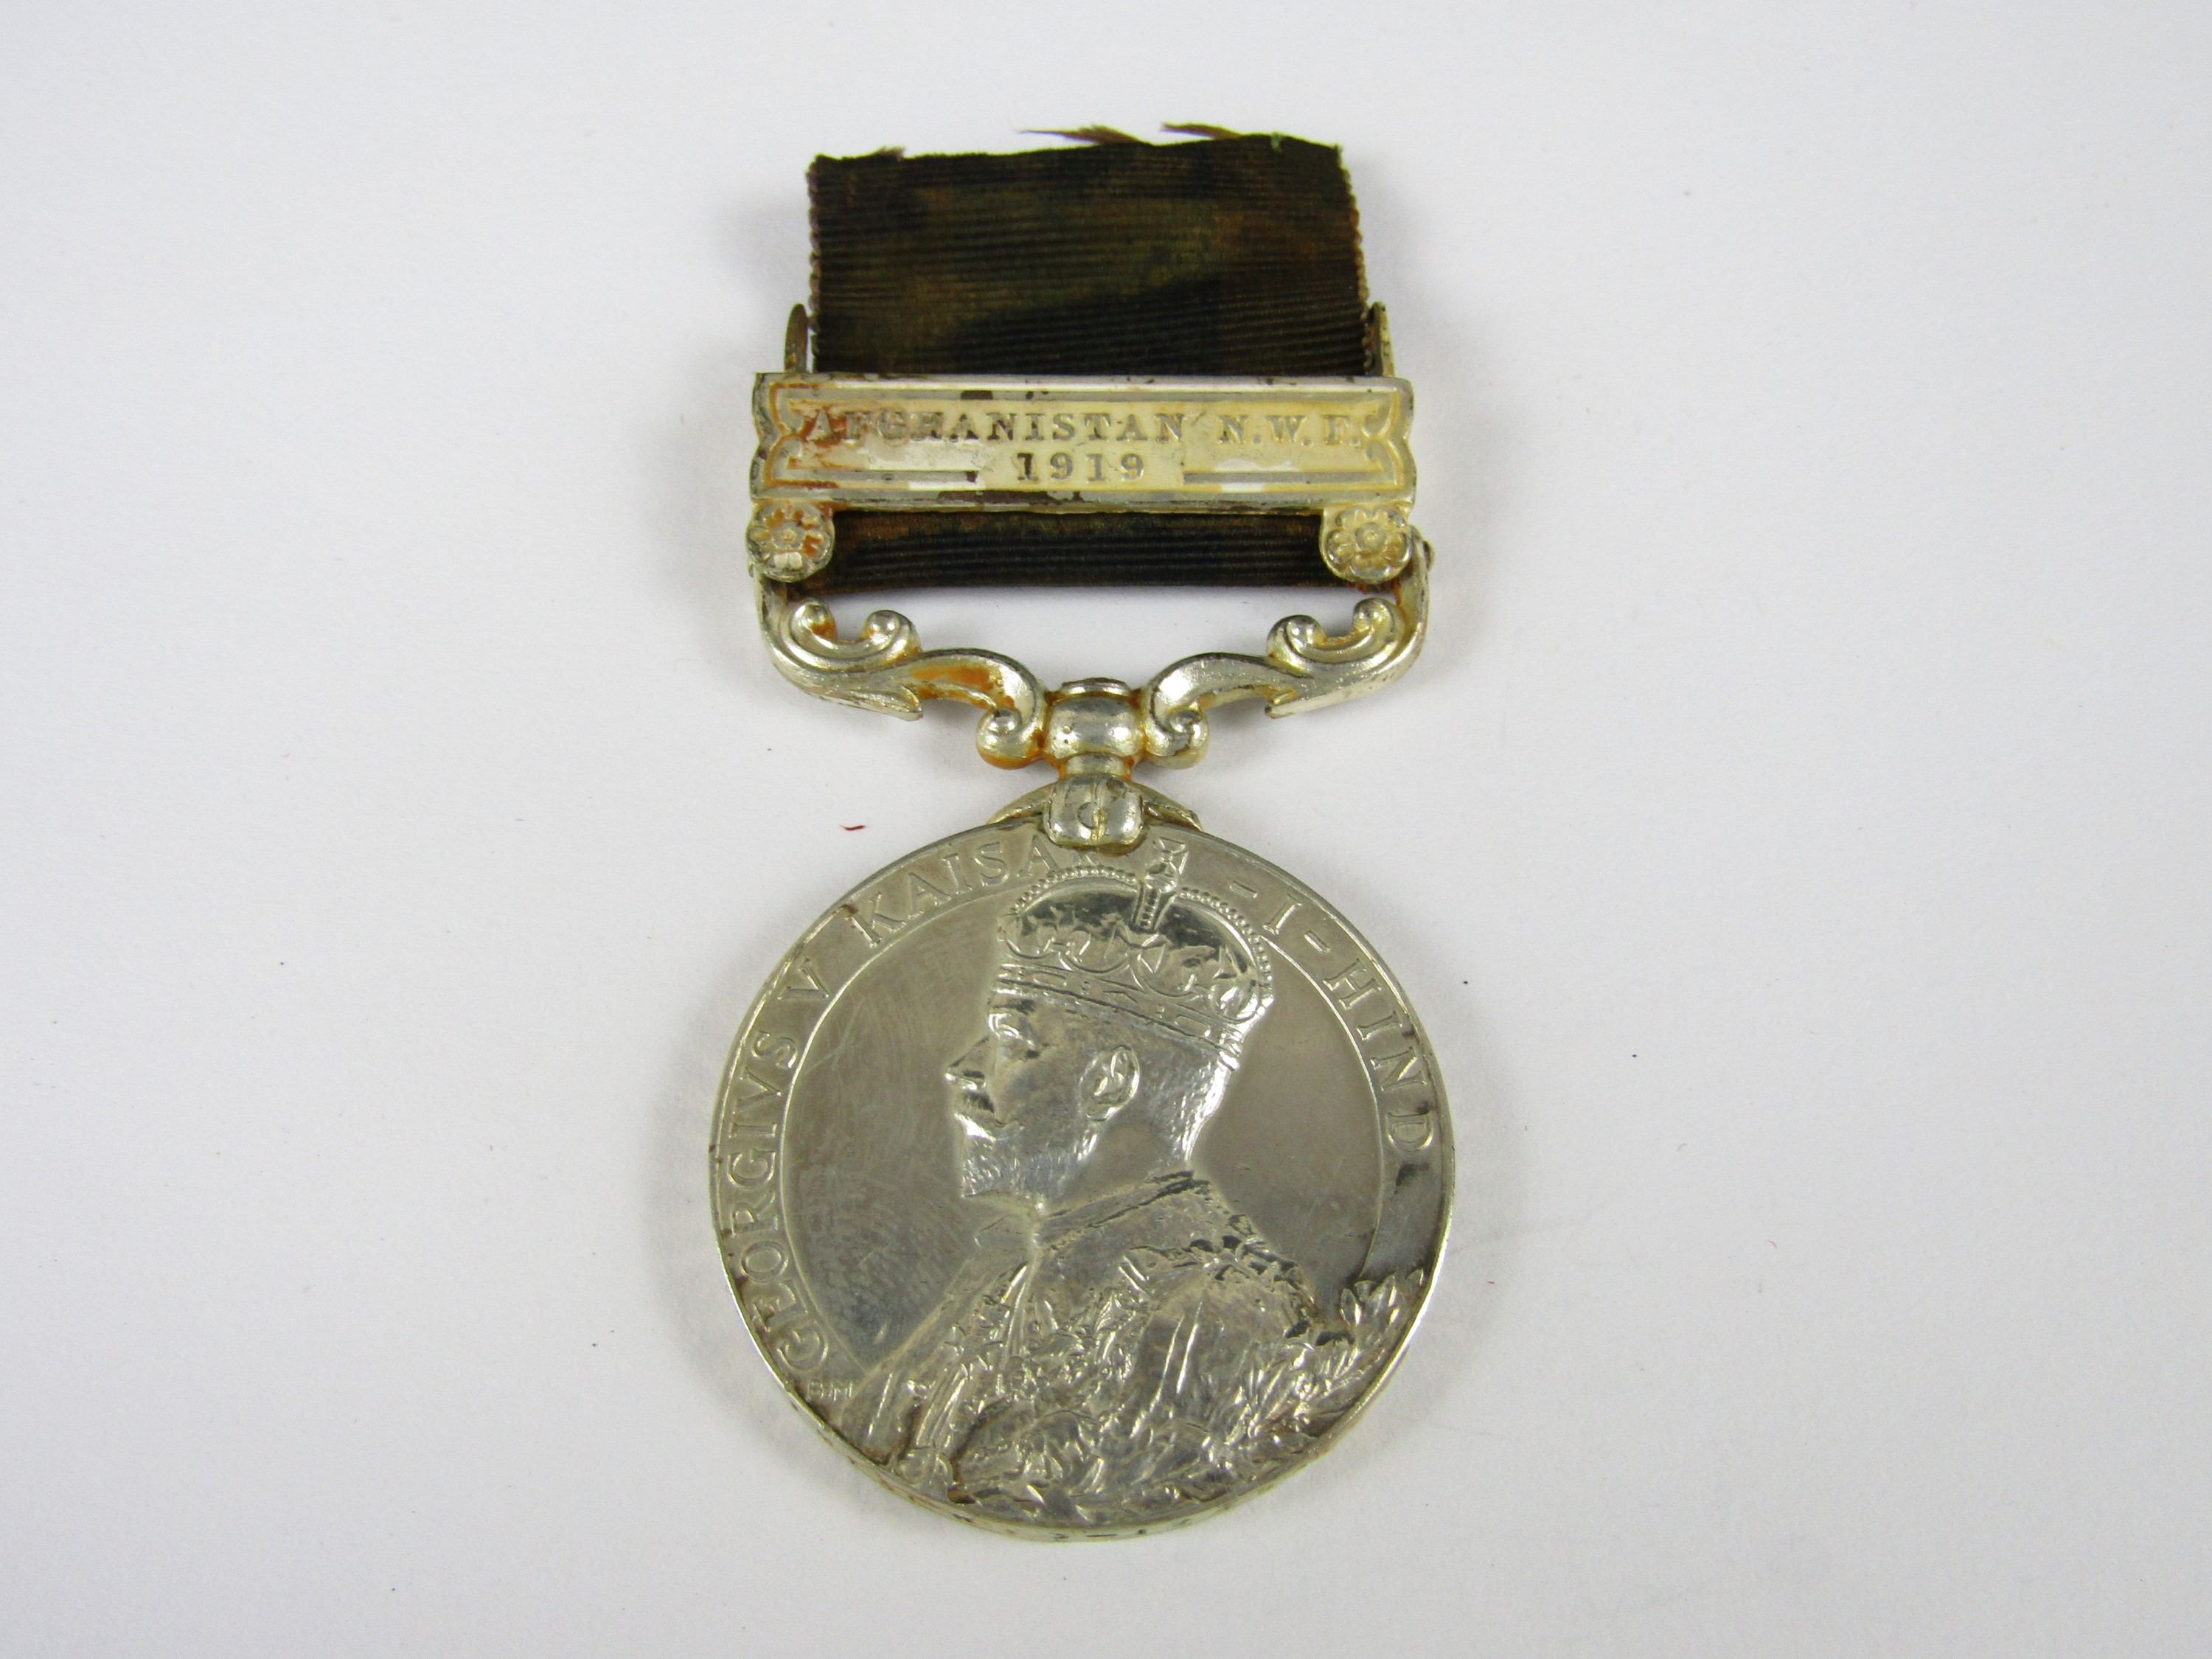 Lot 31 - A George V India General Service Medal to Lieut J A Simpson, 3-124 Baluch Infantry